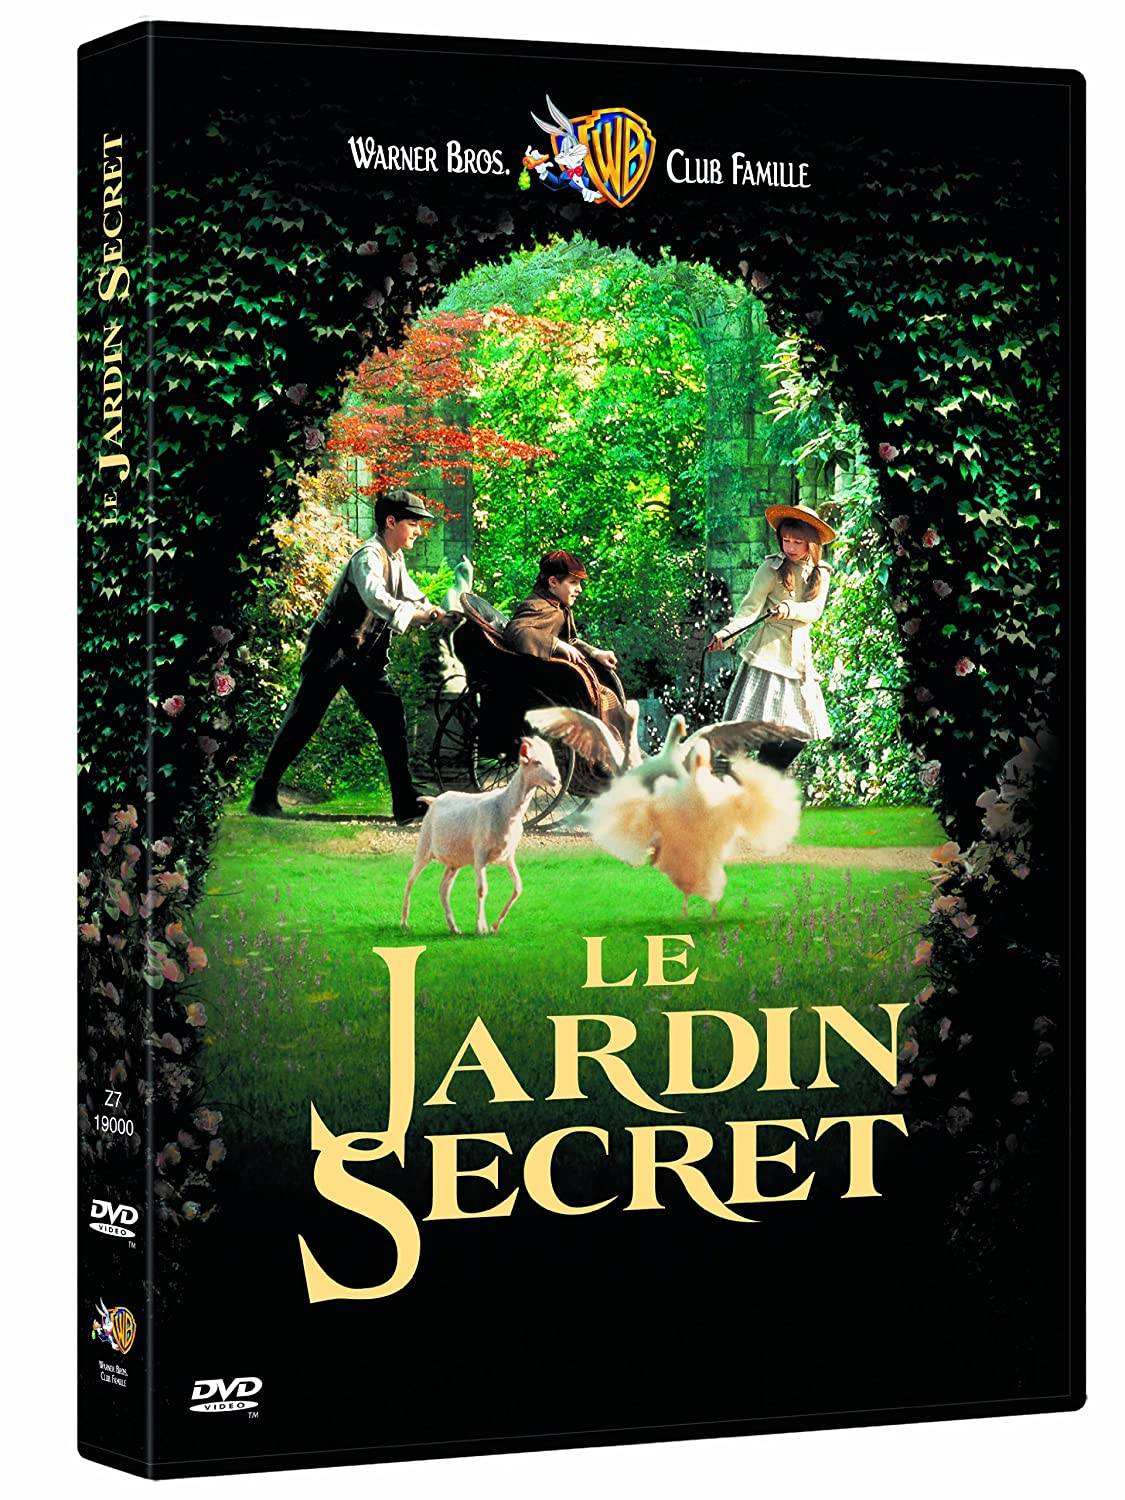 Le Jardin secret [Francia] [DVD]: Amazon.es: Maggie Smith, Kate Maberly, Heydon Prowse, Andrew Knott, Laura Crossley, Agnieszka Holland, Maggie Smith, Kate Maberly: Cine y Series TV